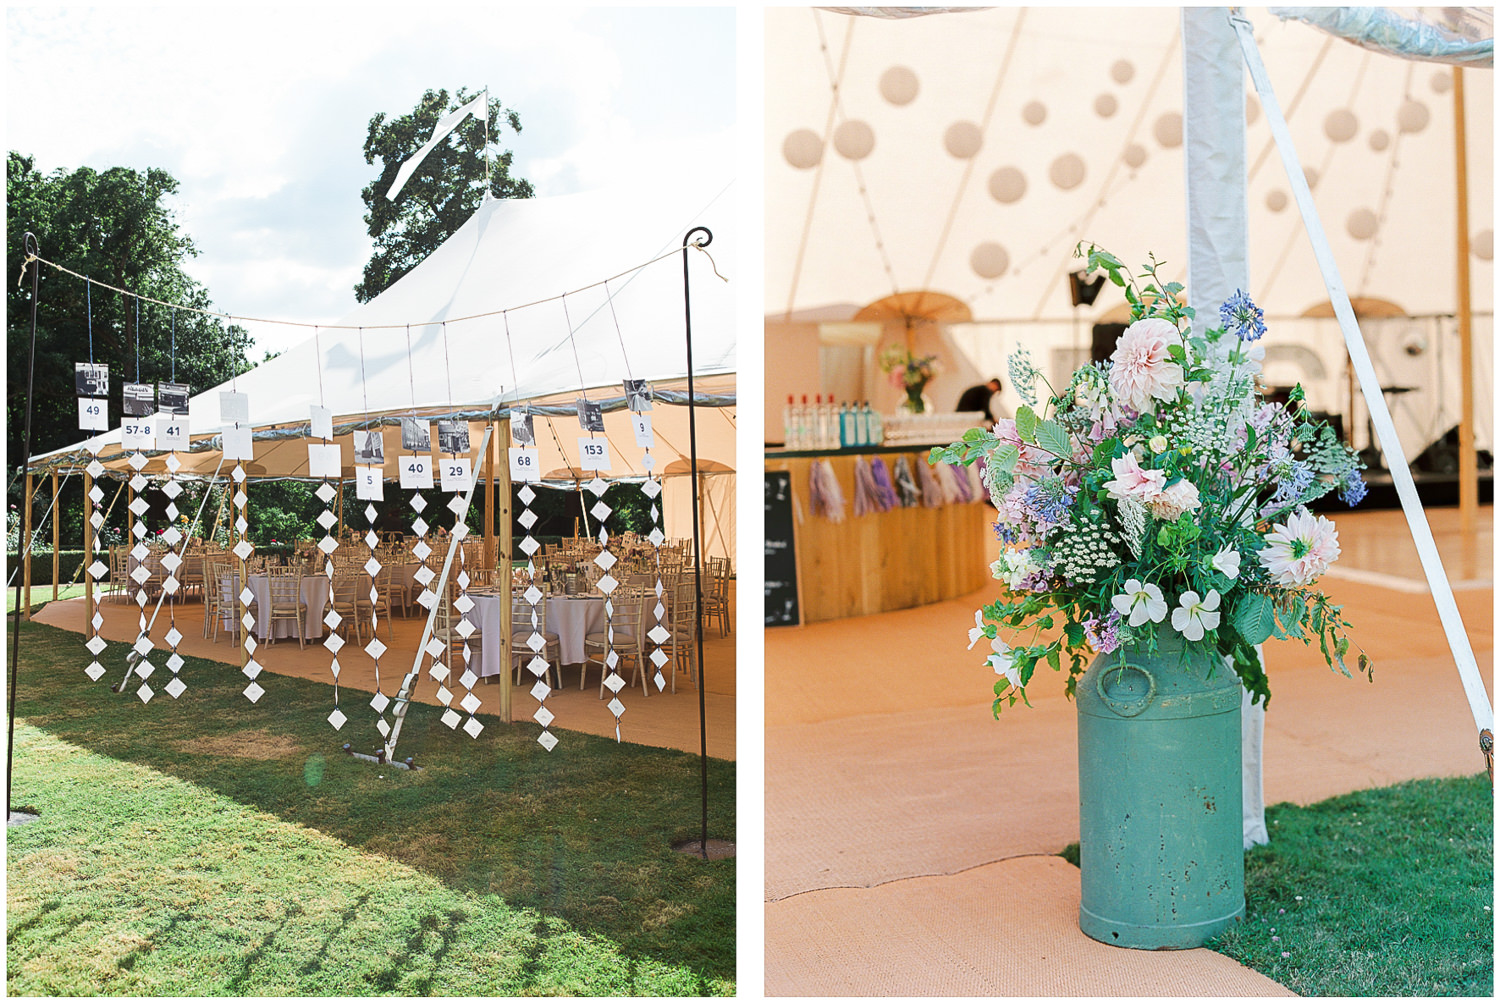 newington house, papakata marquee wedding, garden wedding, Sperry tent, Floral churns